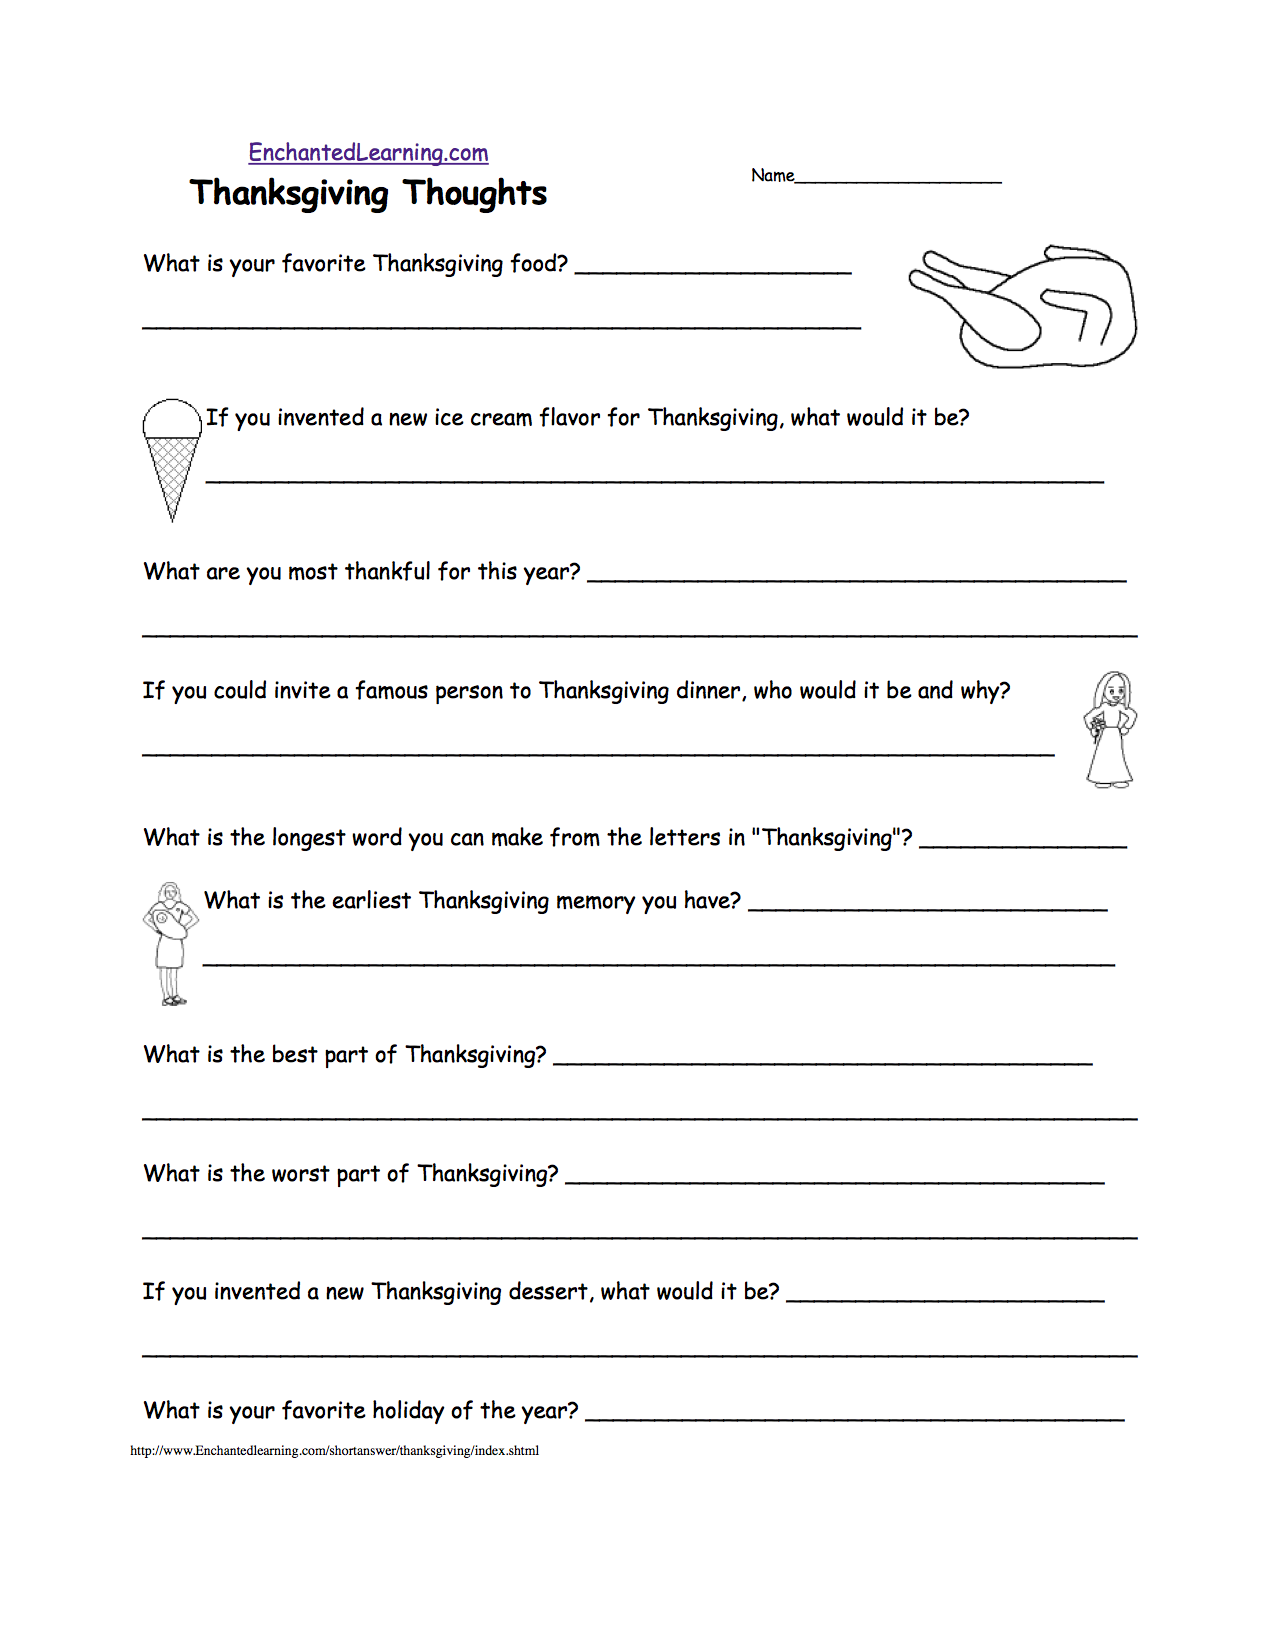 Free Worksheet Free Spanish Worksheets For Middle School thanksgiving crafts worksheets and activities thanksgiving